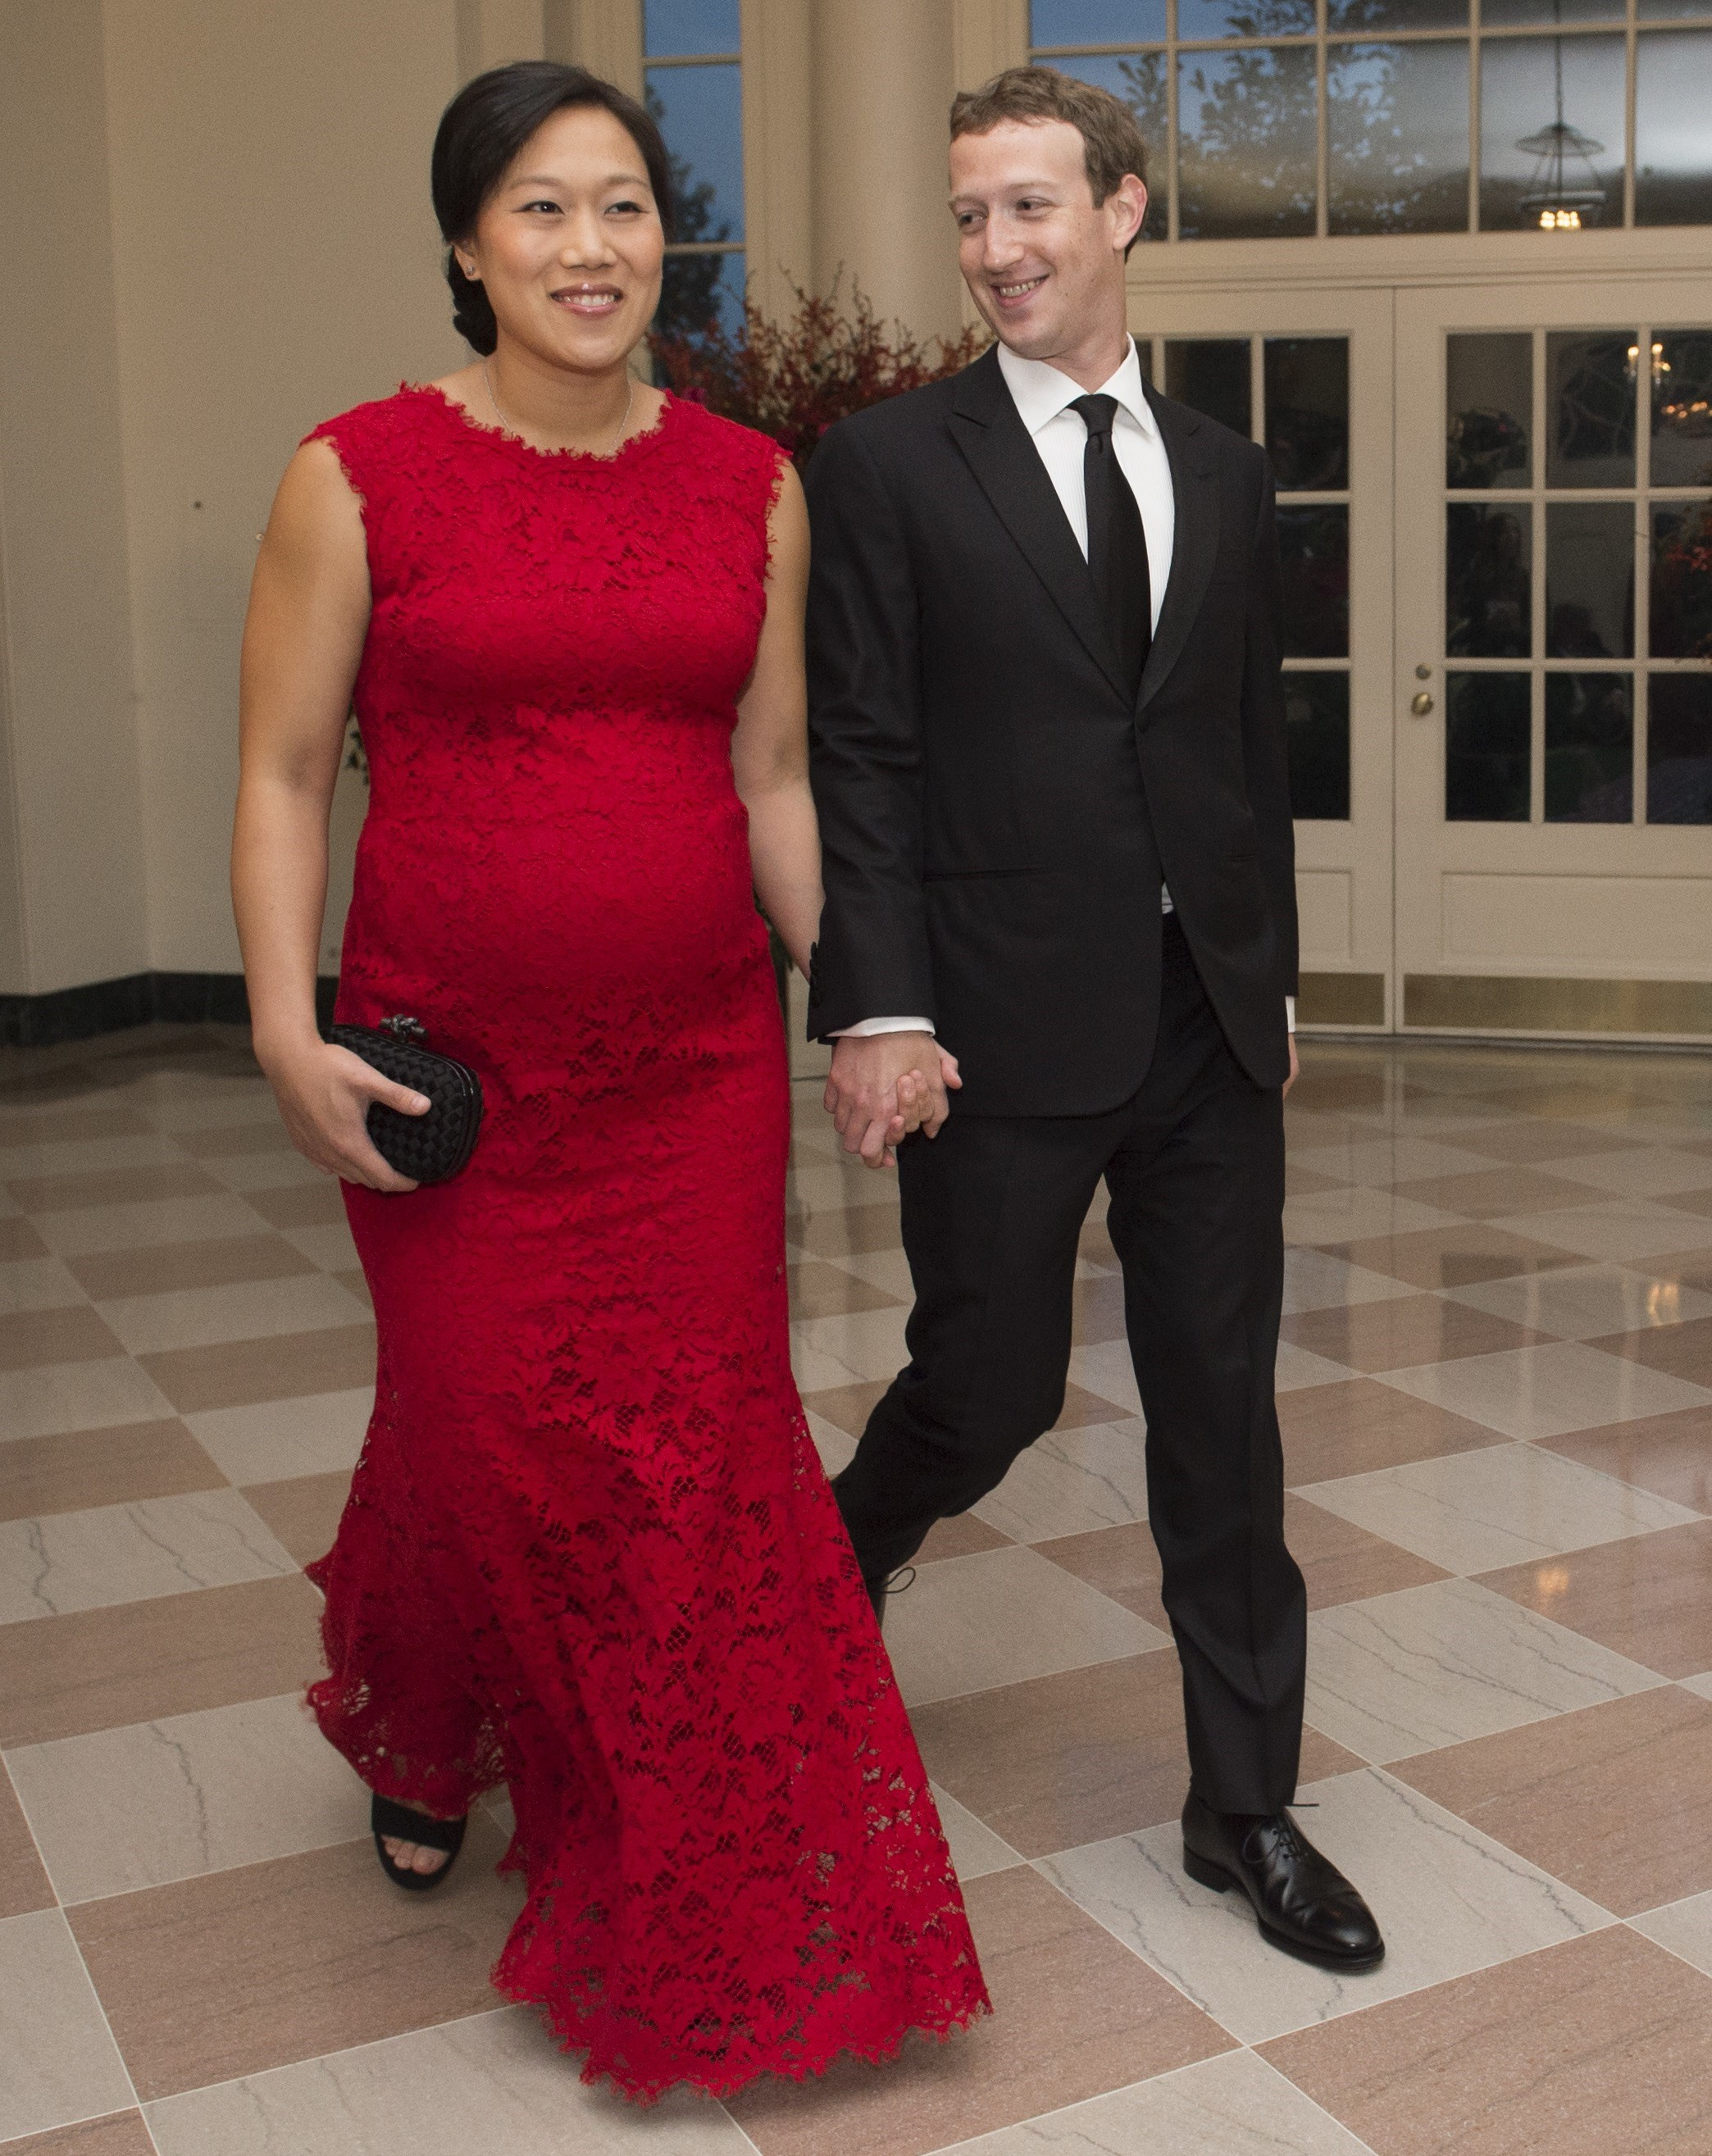 9 Amazing Things About Priscilla Chan That Prove She's More